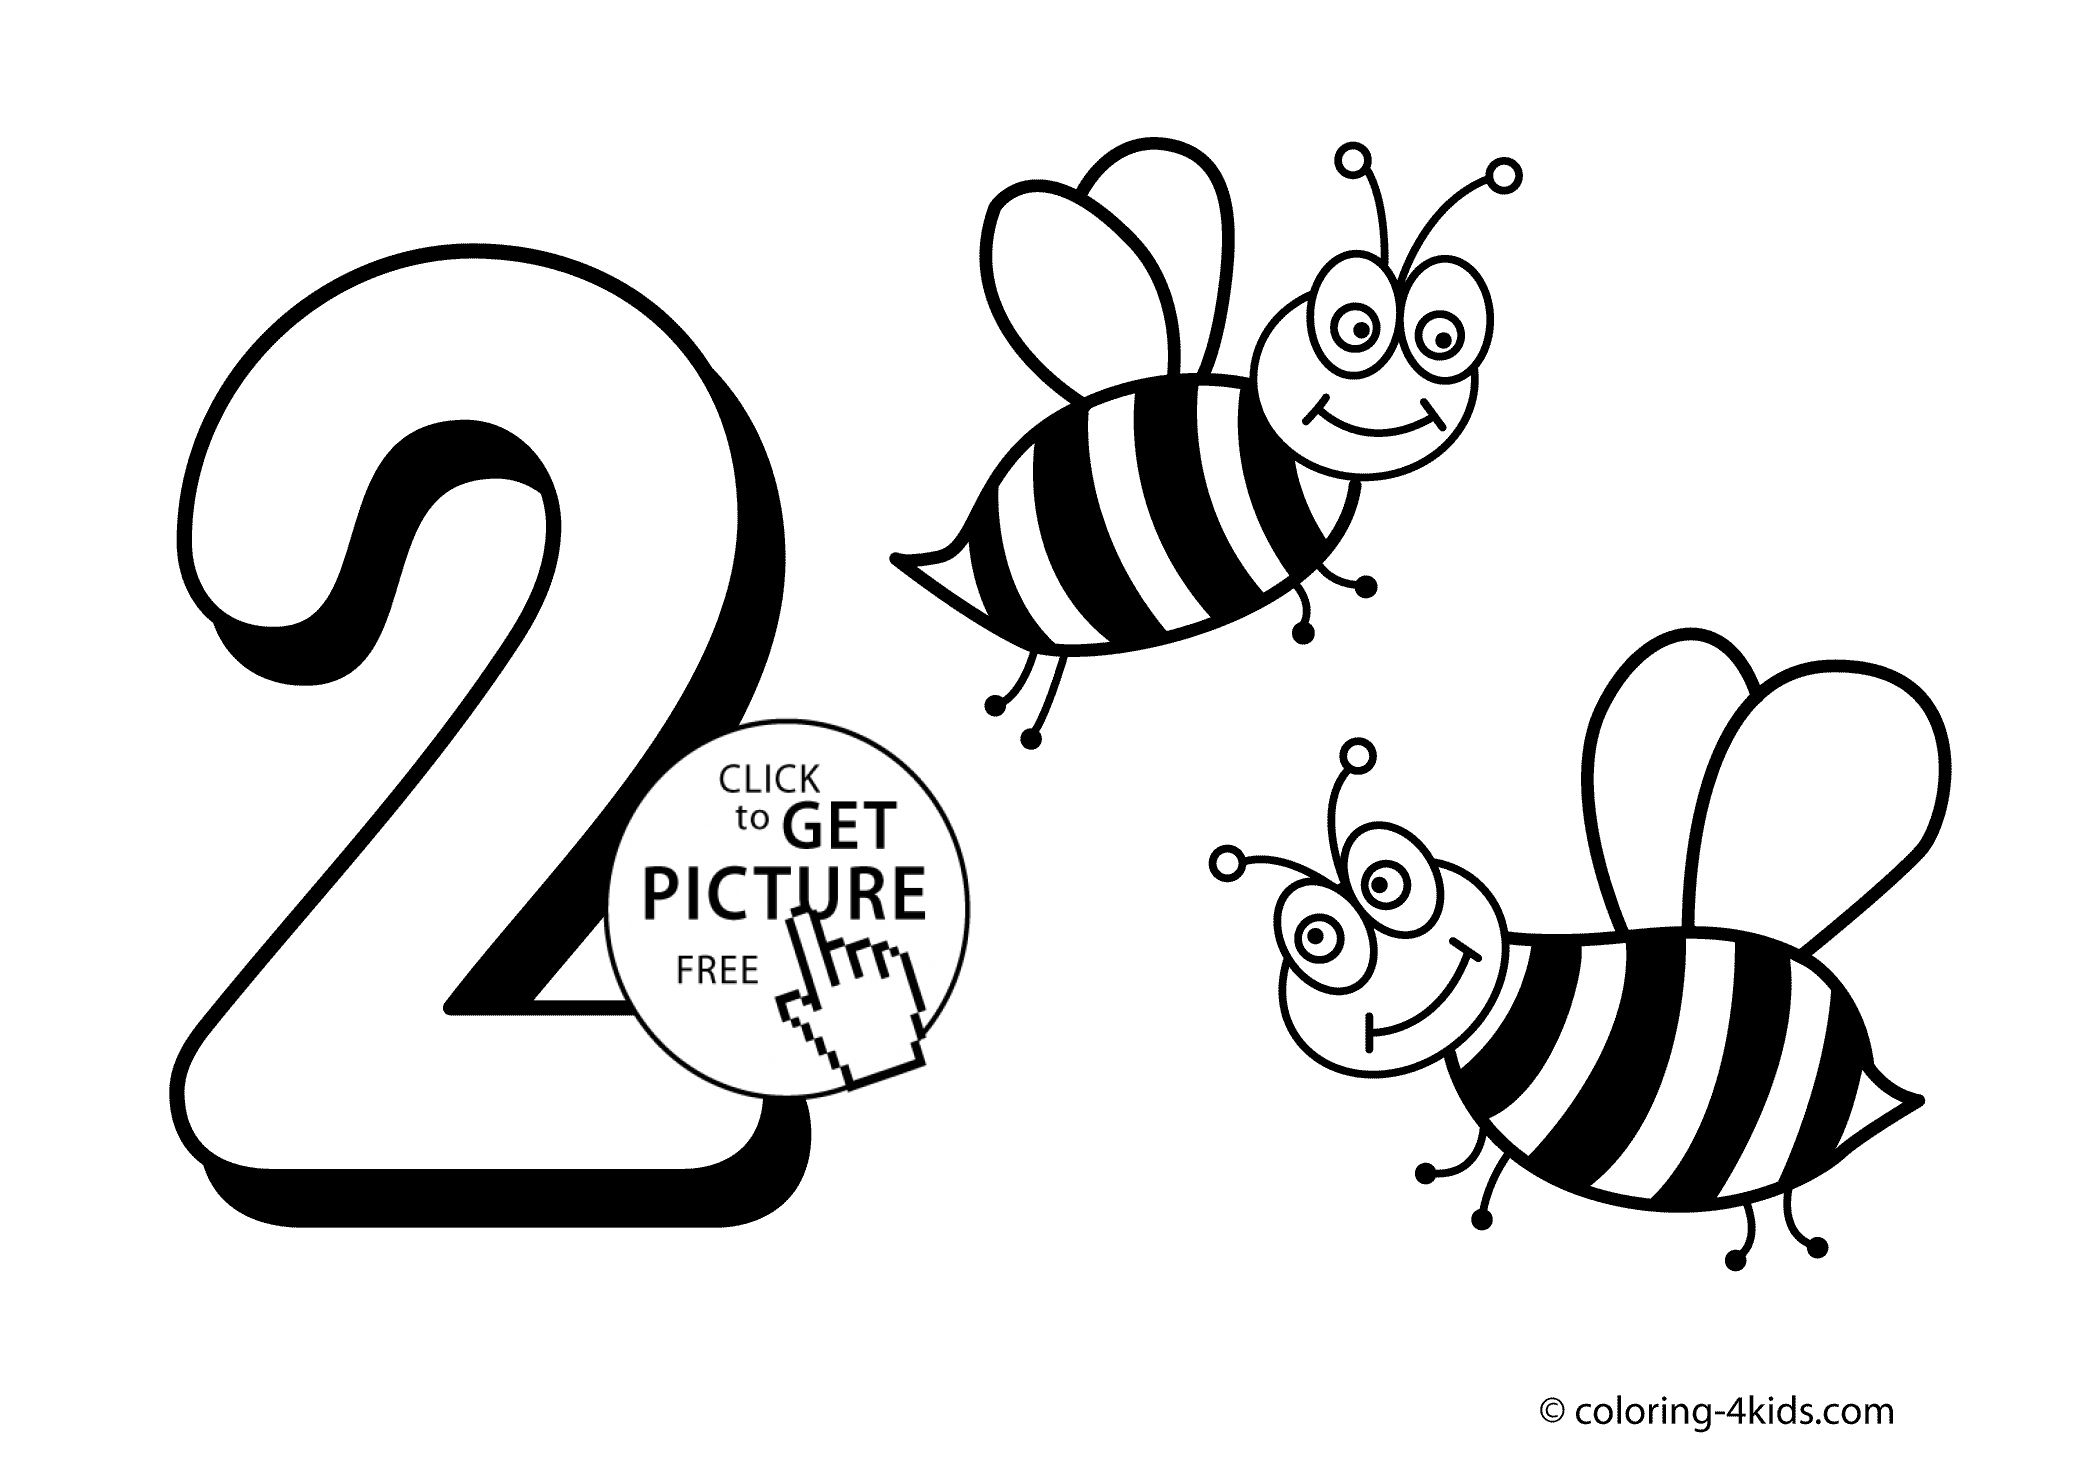 25 Coloring Pages For Toddlers Free